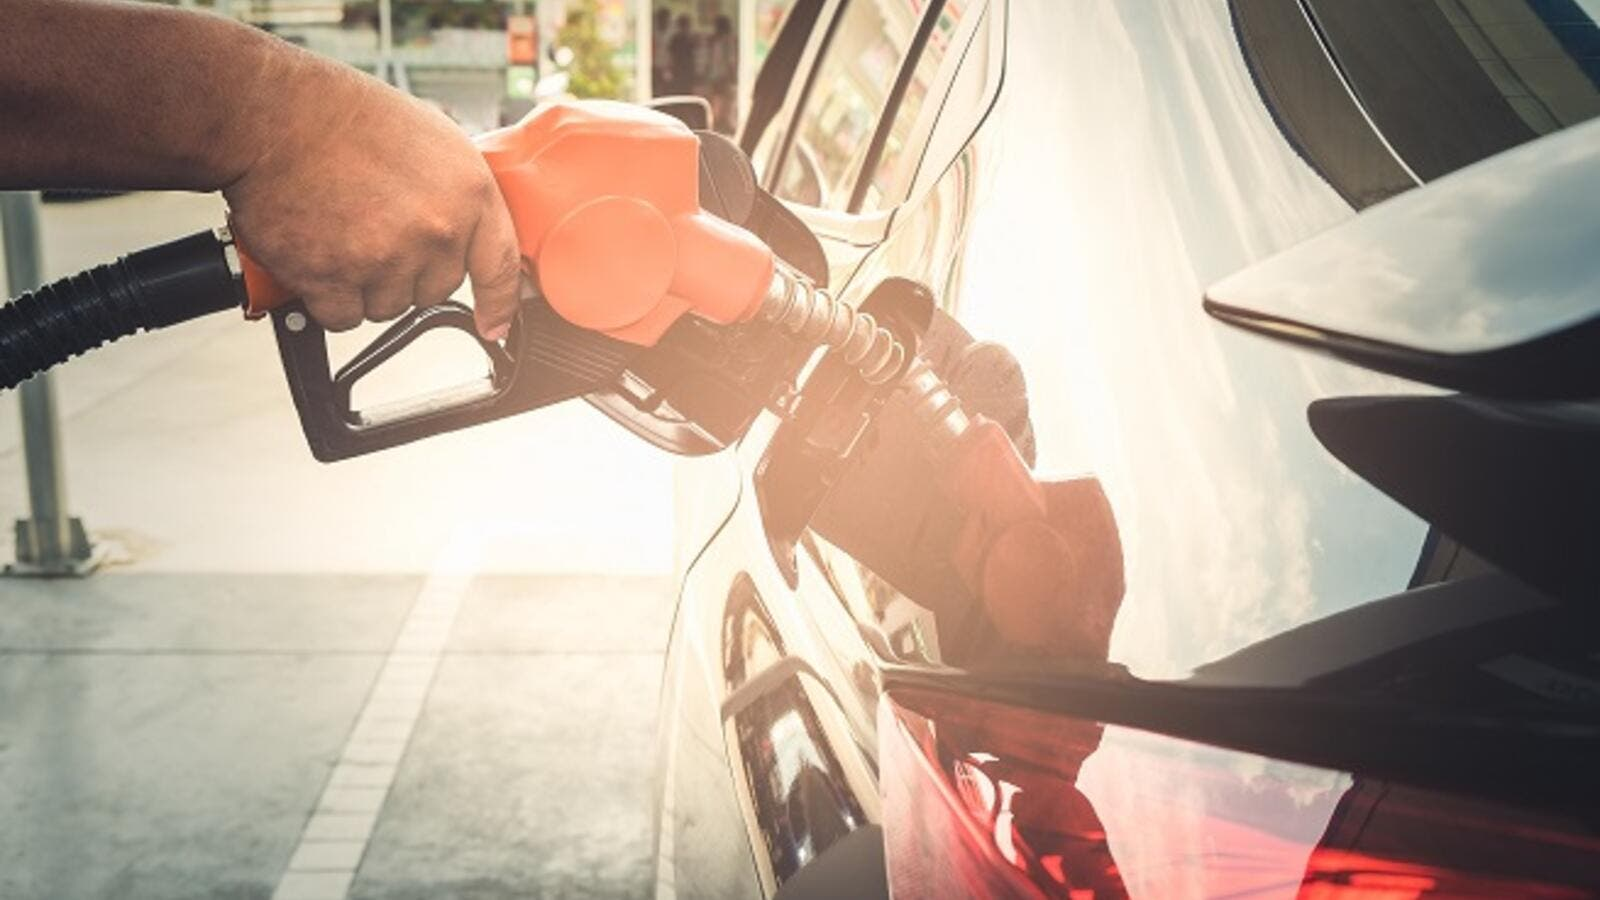 Prices of petrol have been increased by 14 fils a litre. (Shutterstock)